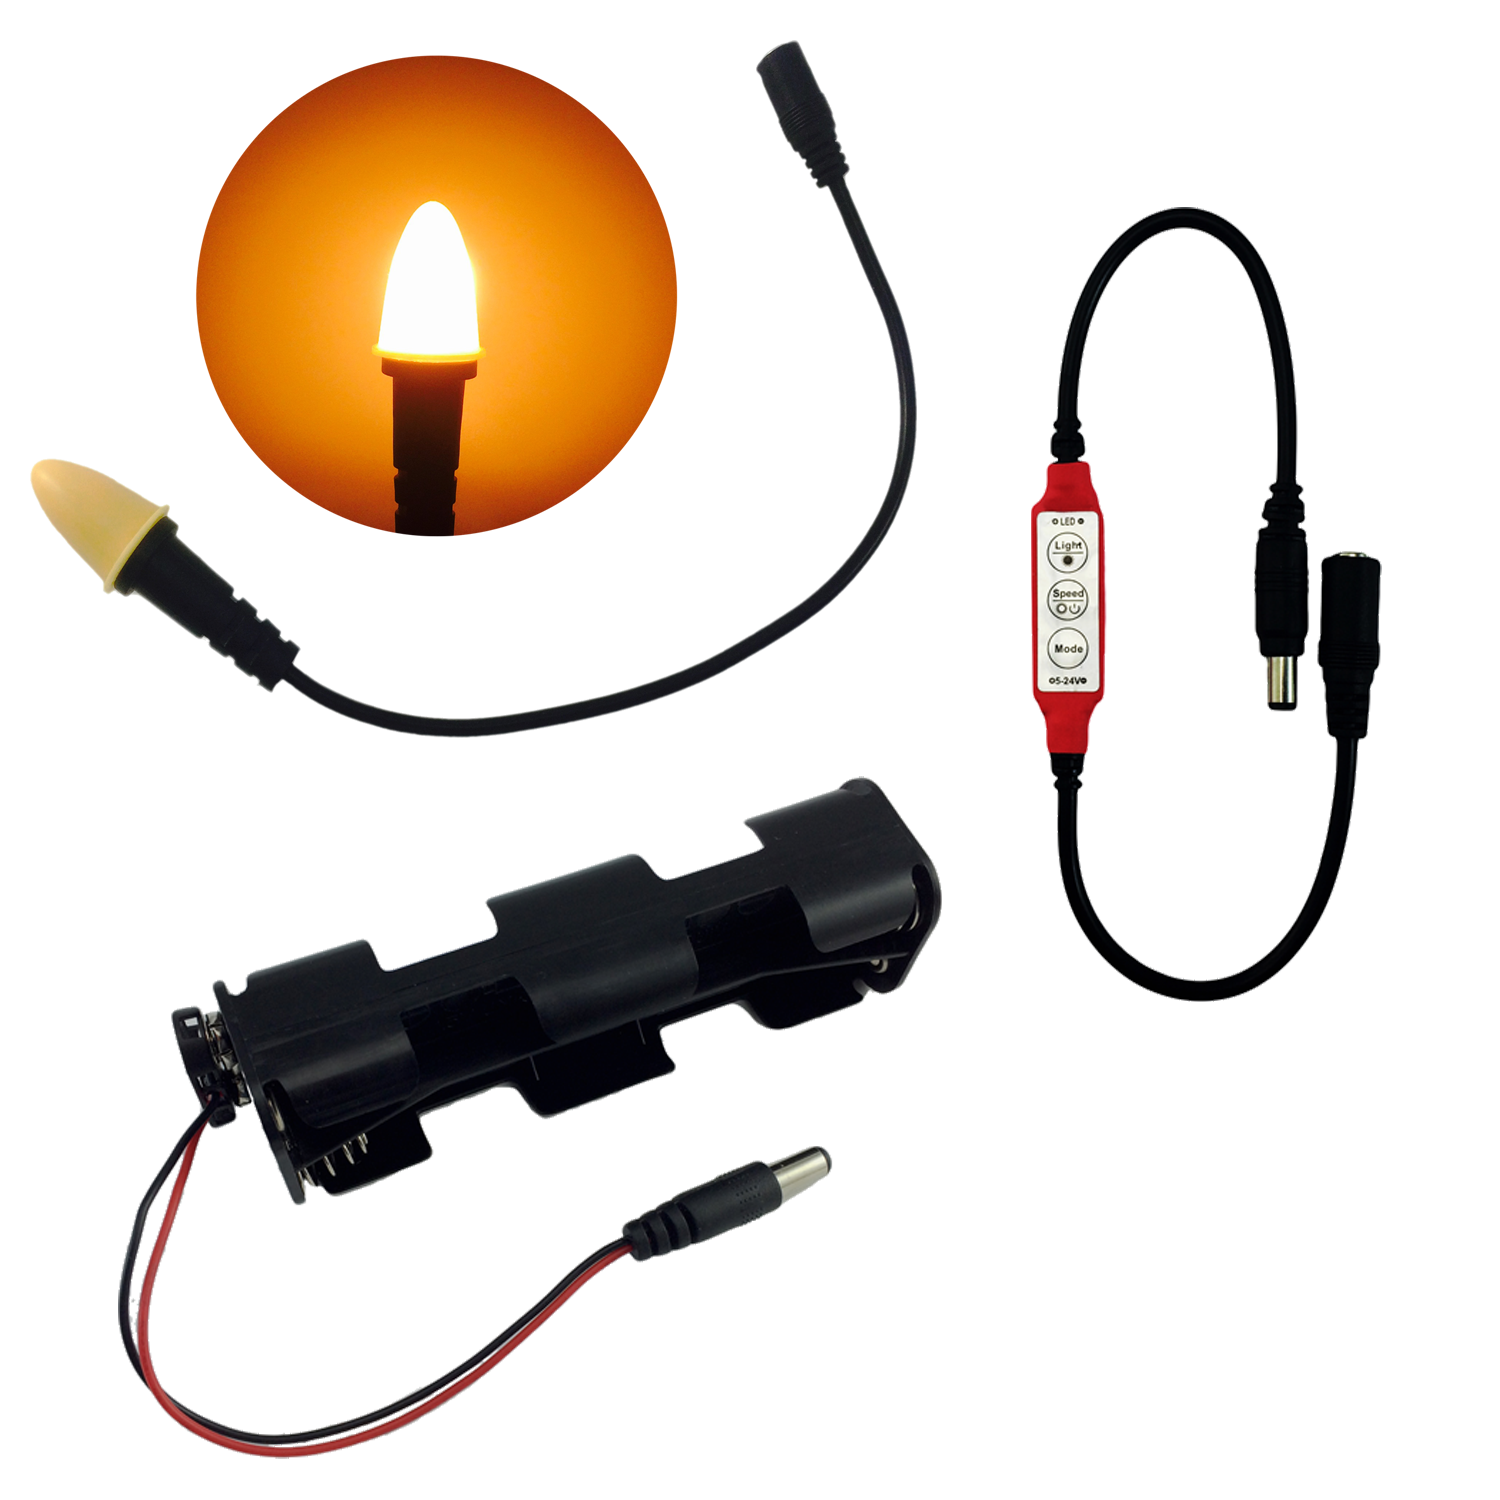 LED Candle Flame Light Kit with Flicker Control